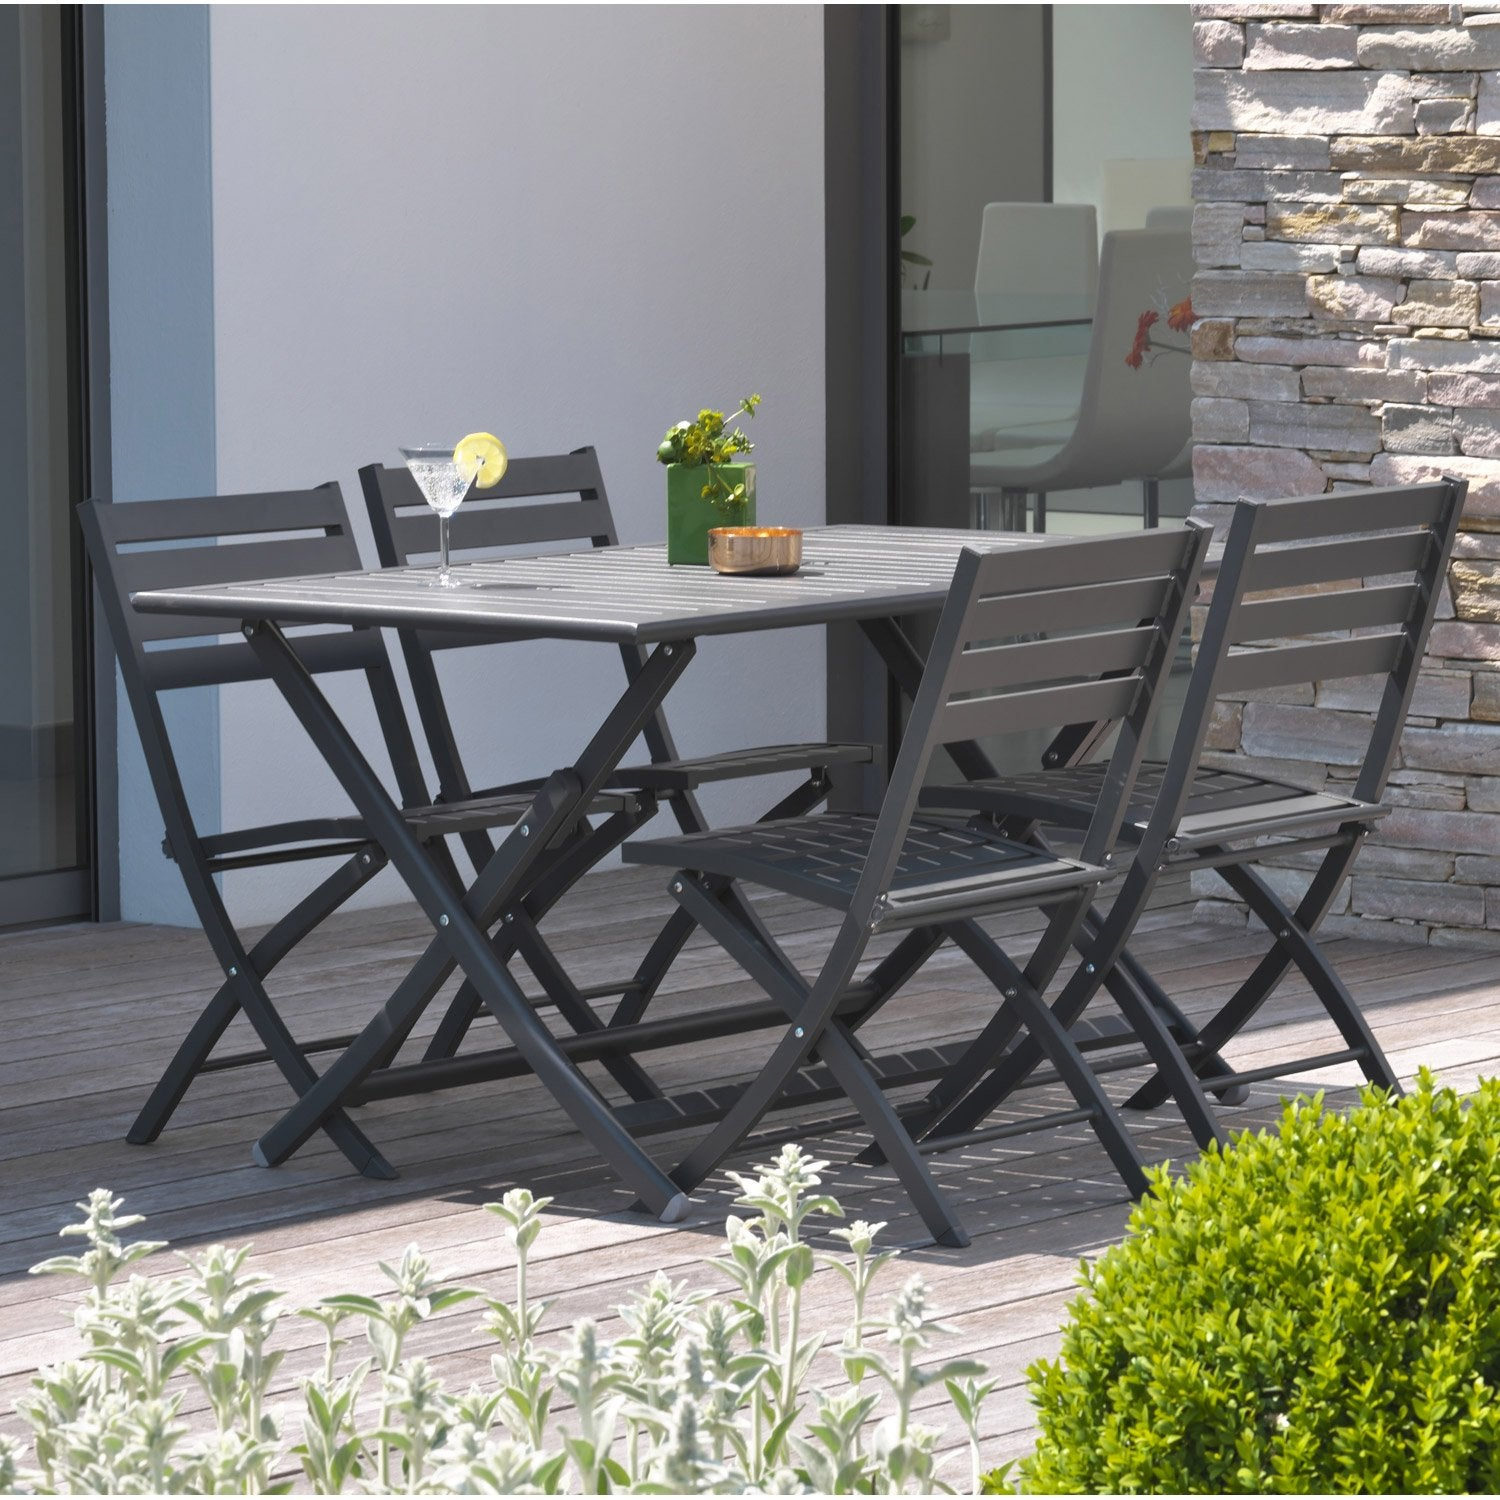 Salon de jardin marius gris anthracite 4 personnes for Salon jardin resine gris anthracite